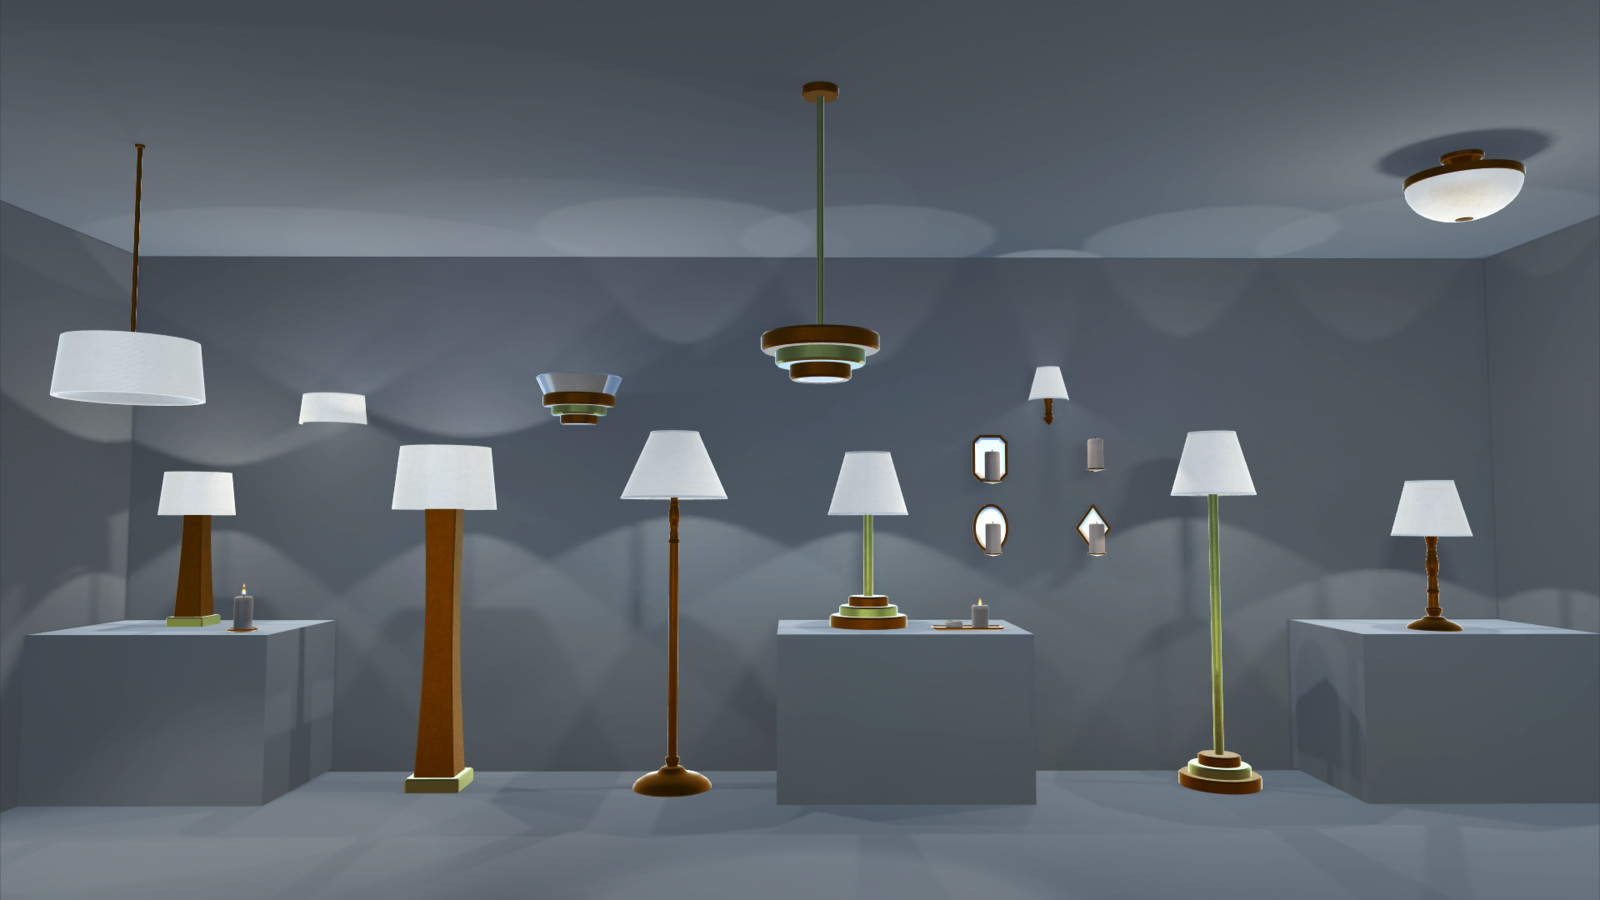 Simpler materials in Unity, no SSS on the lamp shades here.